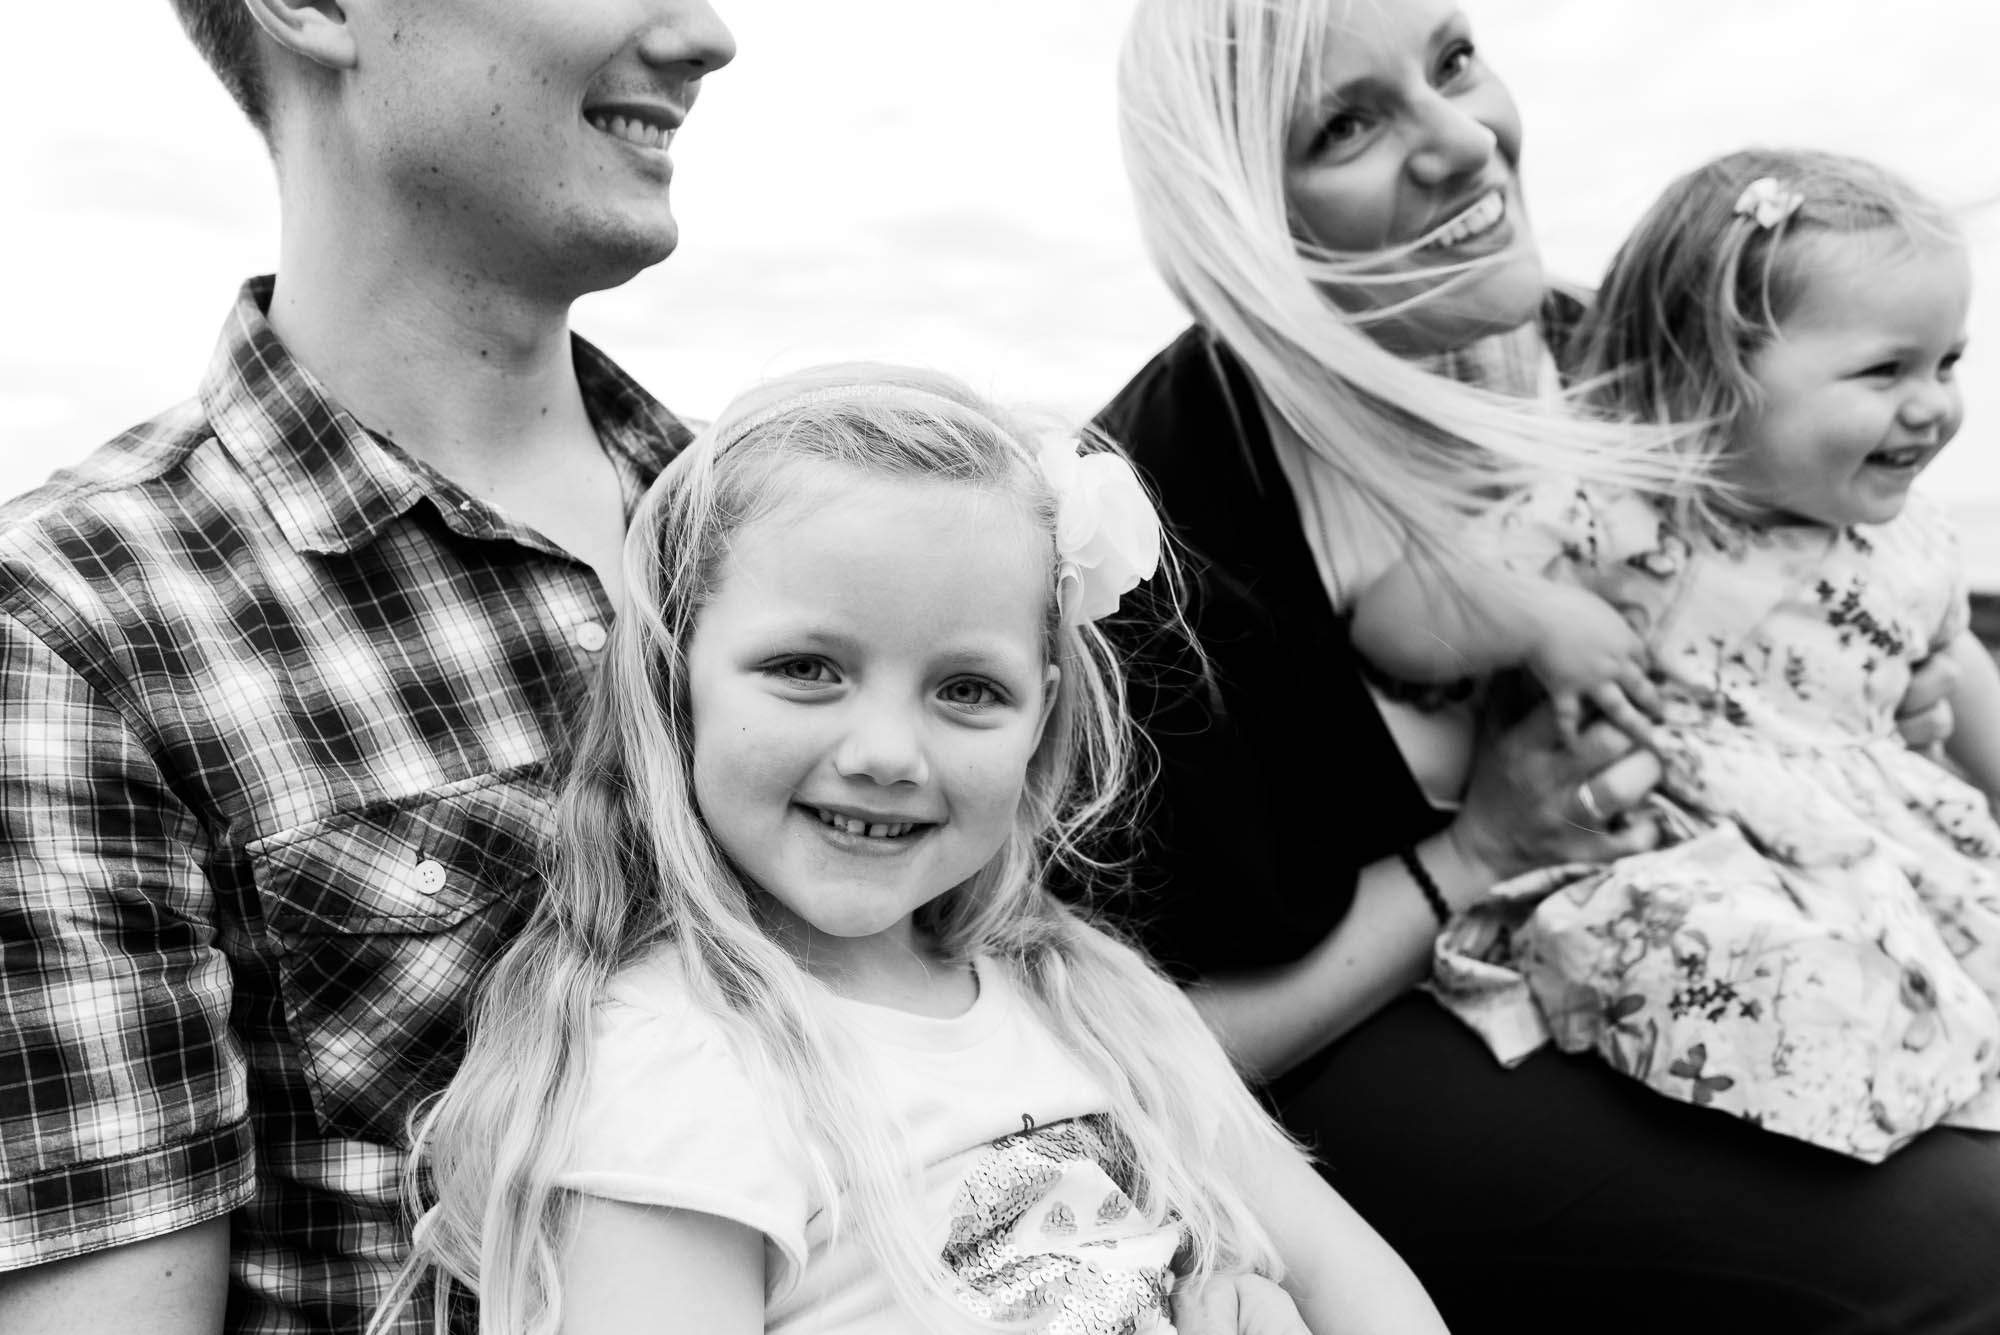 melbourne_family_photographer_family_laughing_together.jpg